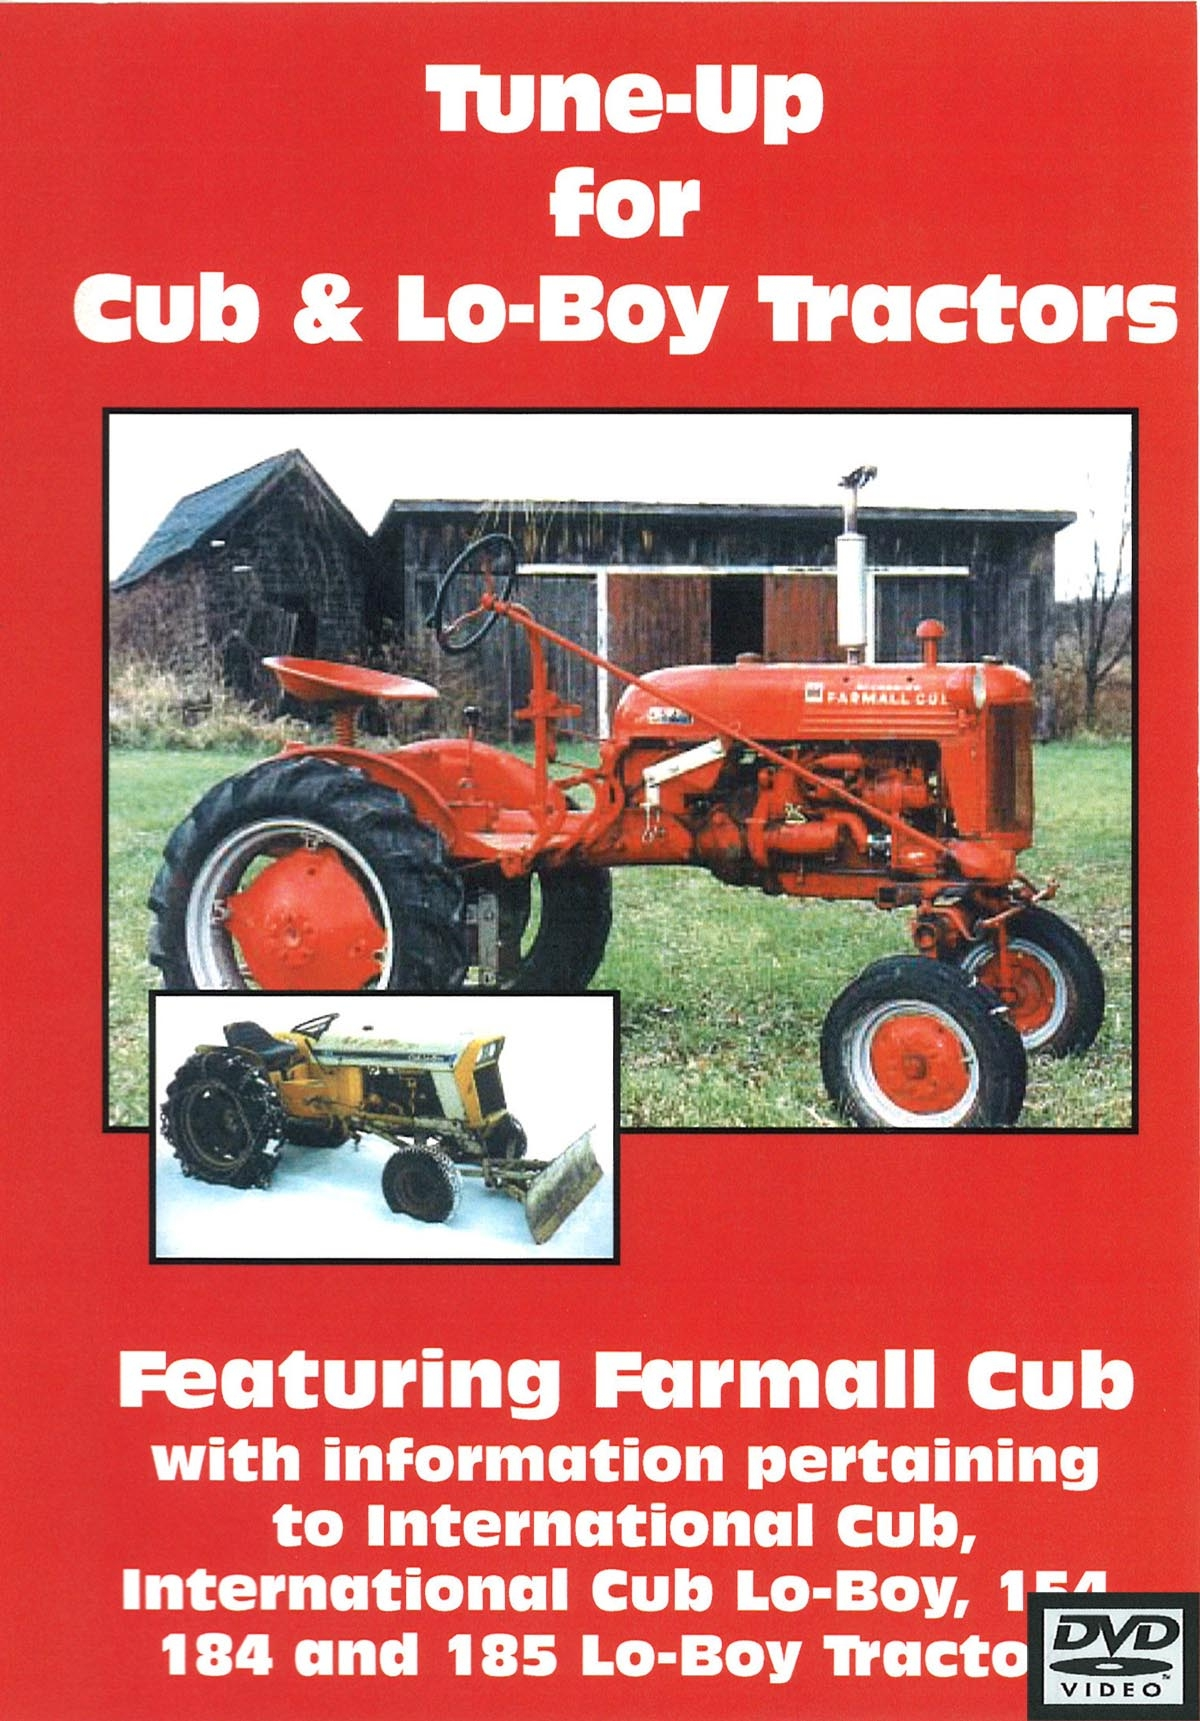 CUB & CUB LO-BOY TUNE UP VIDEO (DVD) - Farmall Cub